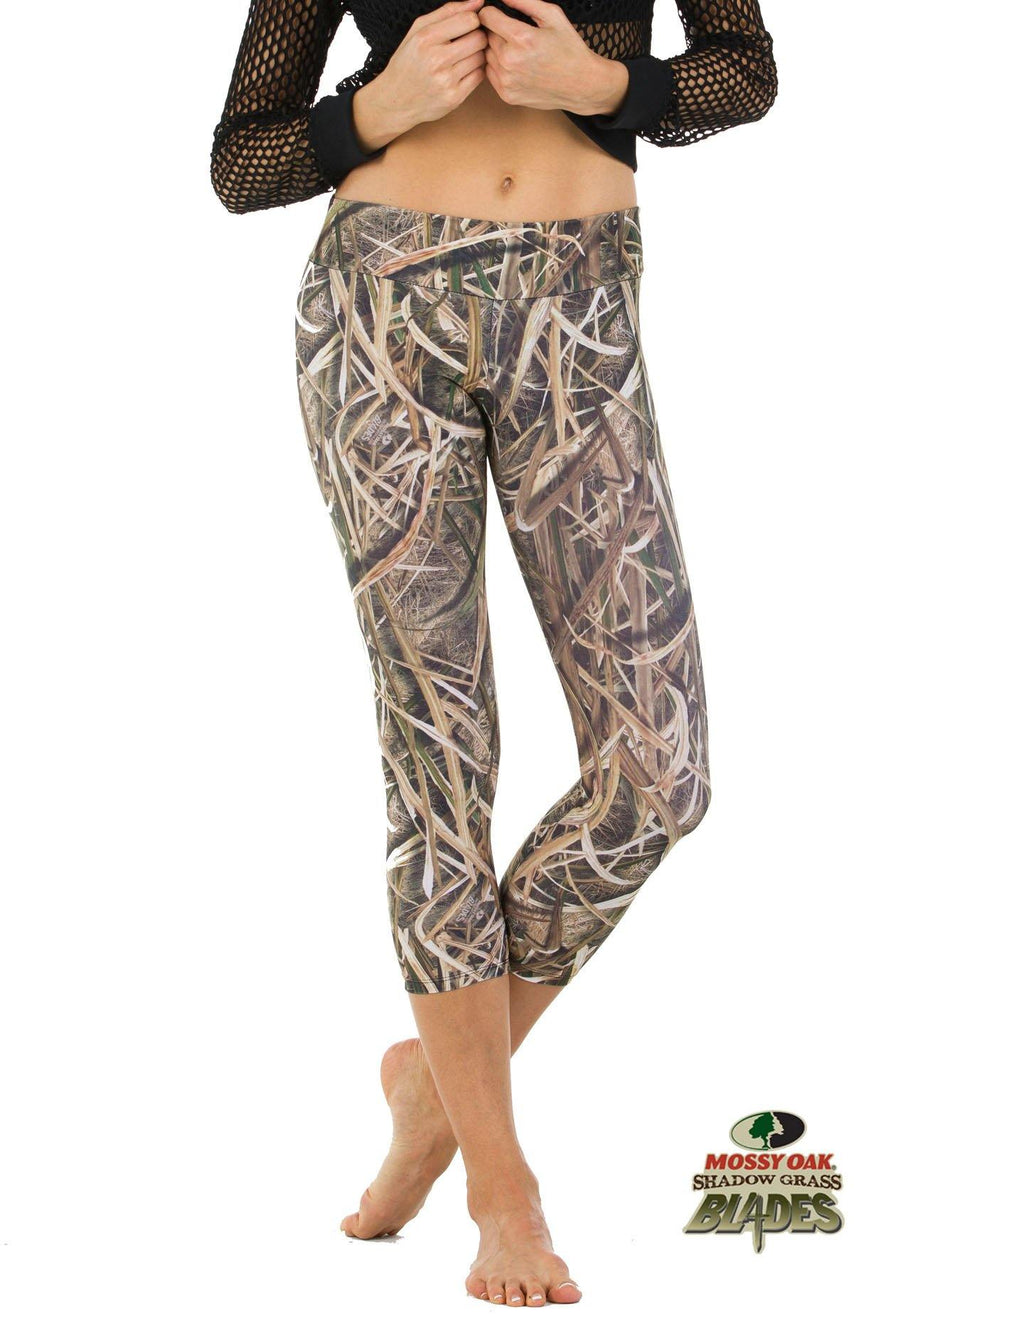 Apsara Leggings Low Waist Cropped, Mossy Oak Shadow Grass Blades - Apsara Style